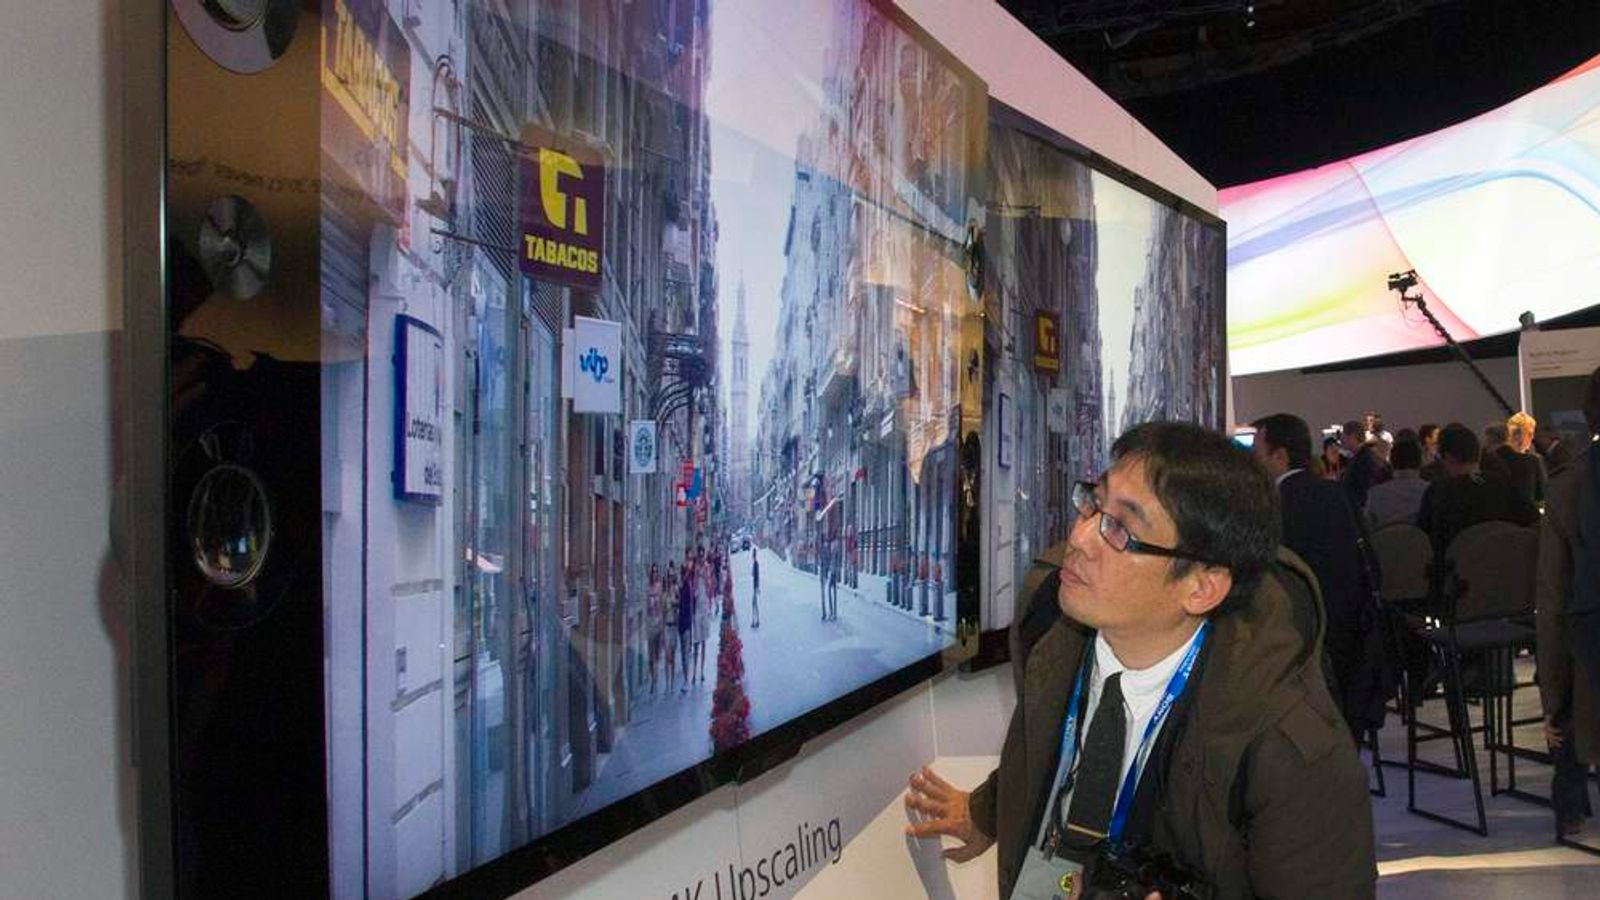 A Sony X-Reality PRO 4K Ultra HD television